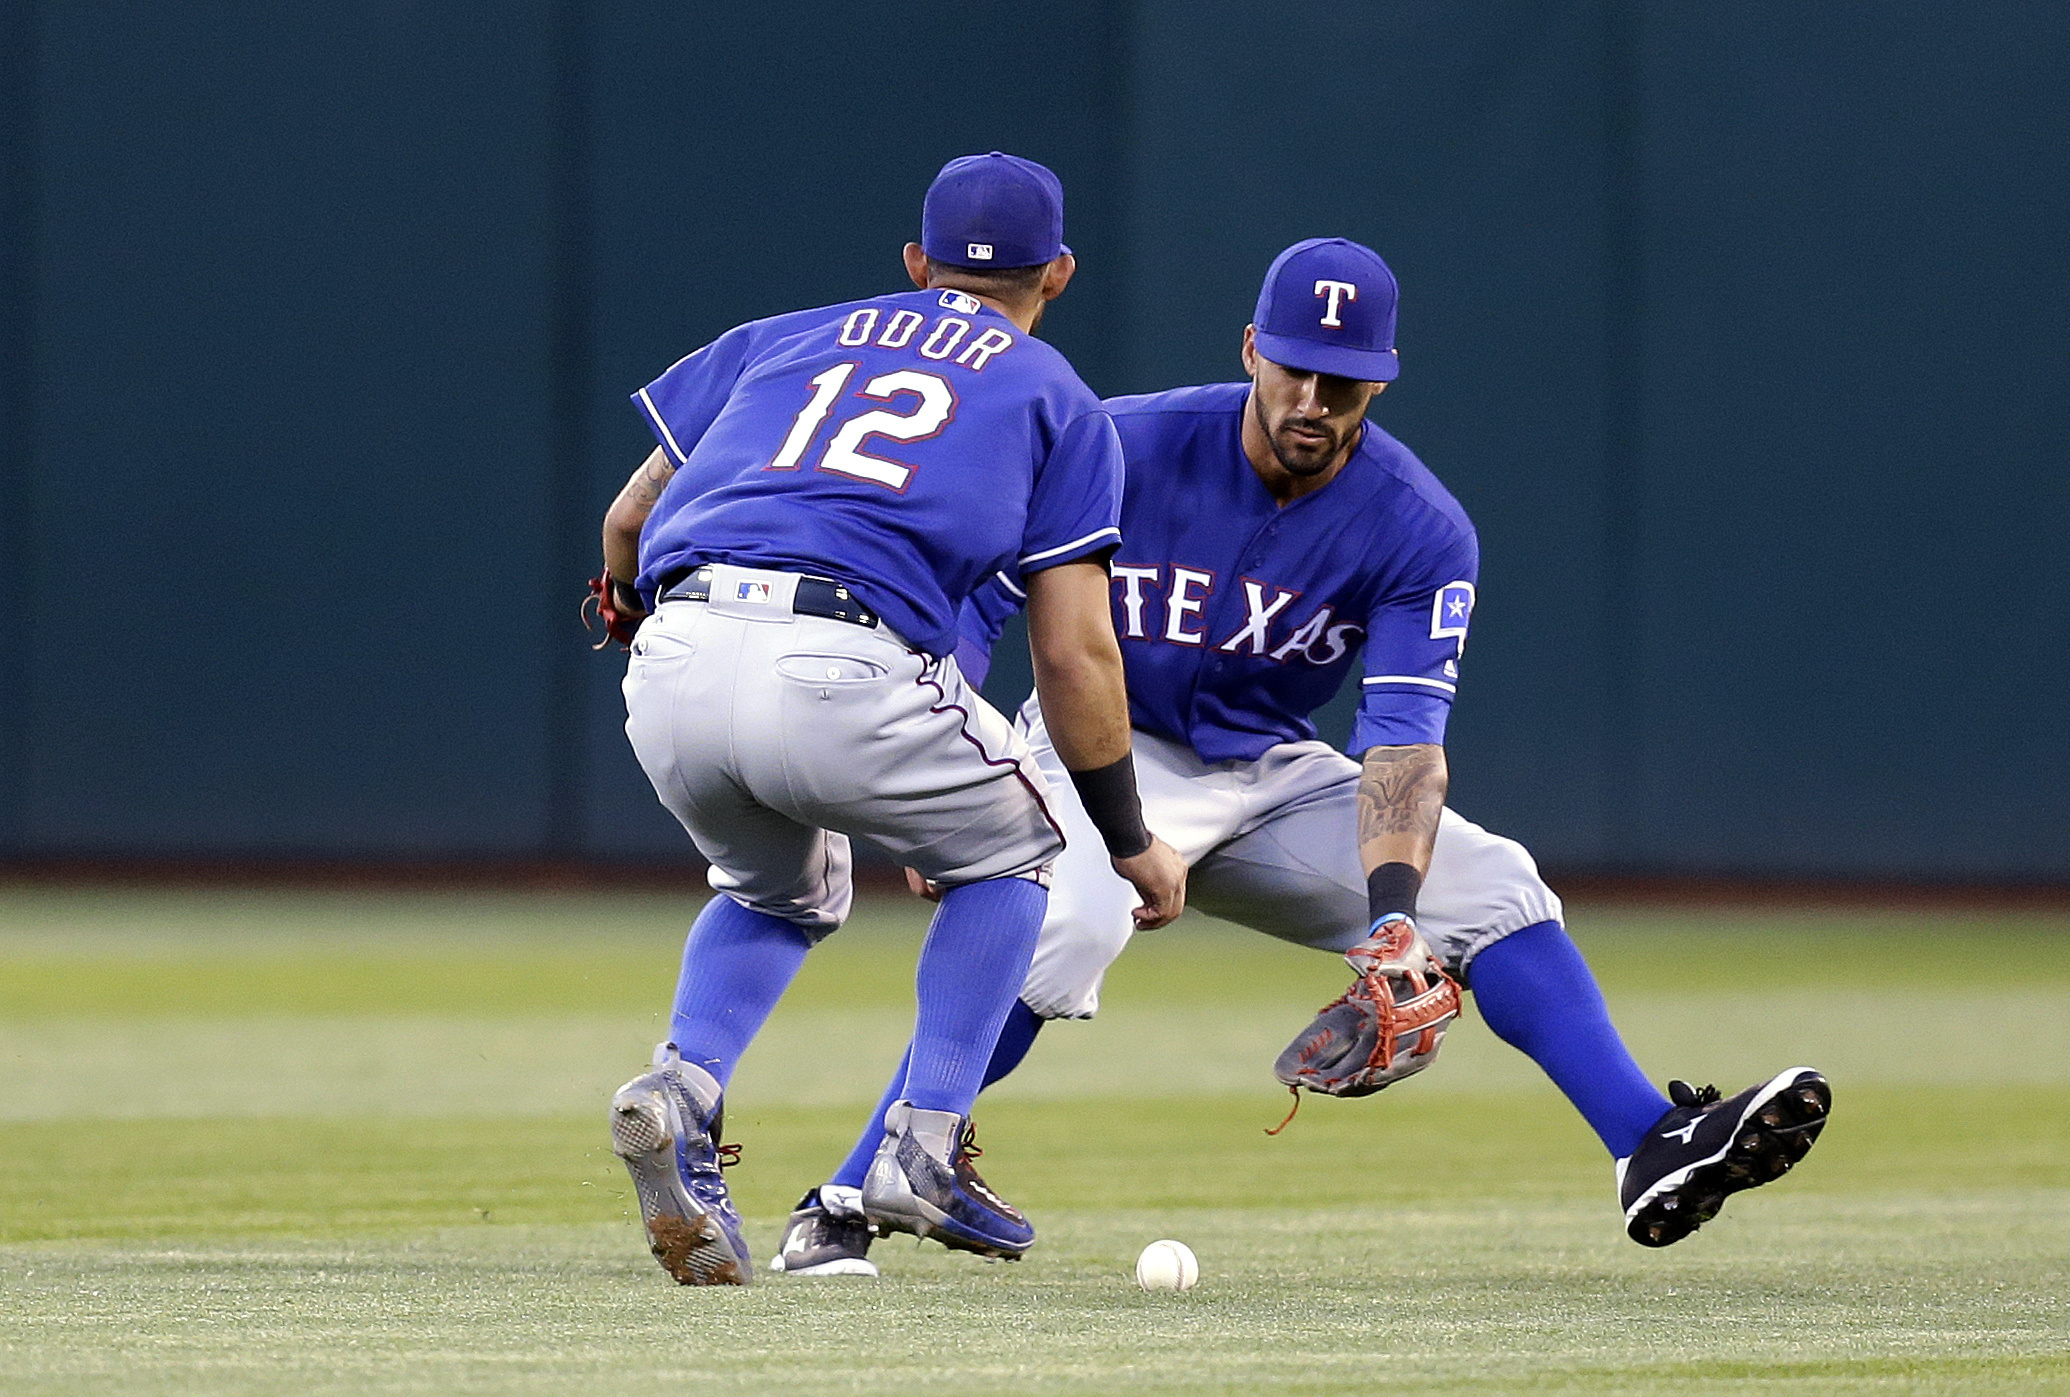 Texas Rangers' Rougned Odor (12) and Ian Desmond, right, field a ball hit for a single by Oakland Athletics' Josh Reddick in the fourth inning of a baseball game, Monday, May 16, 2016, in Oakland, Calif. (AP Photo/Ben Margot)